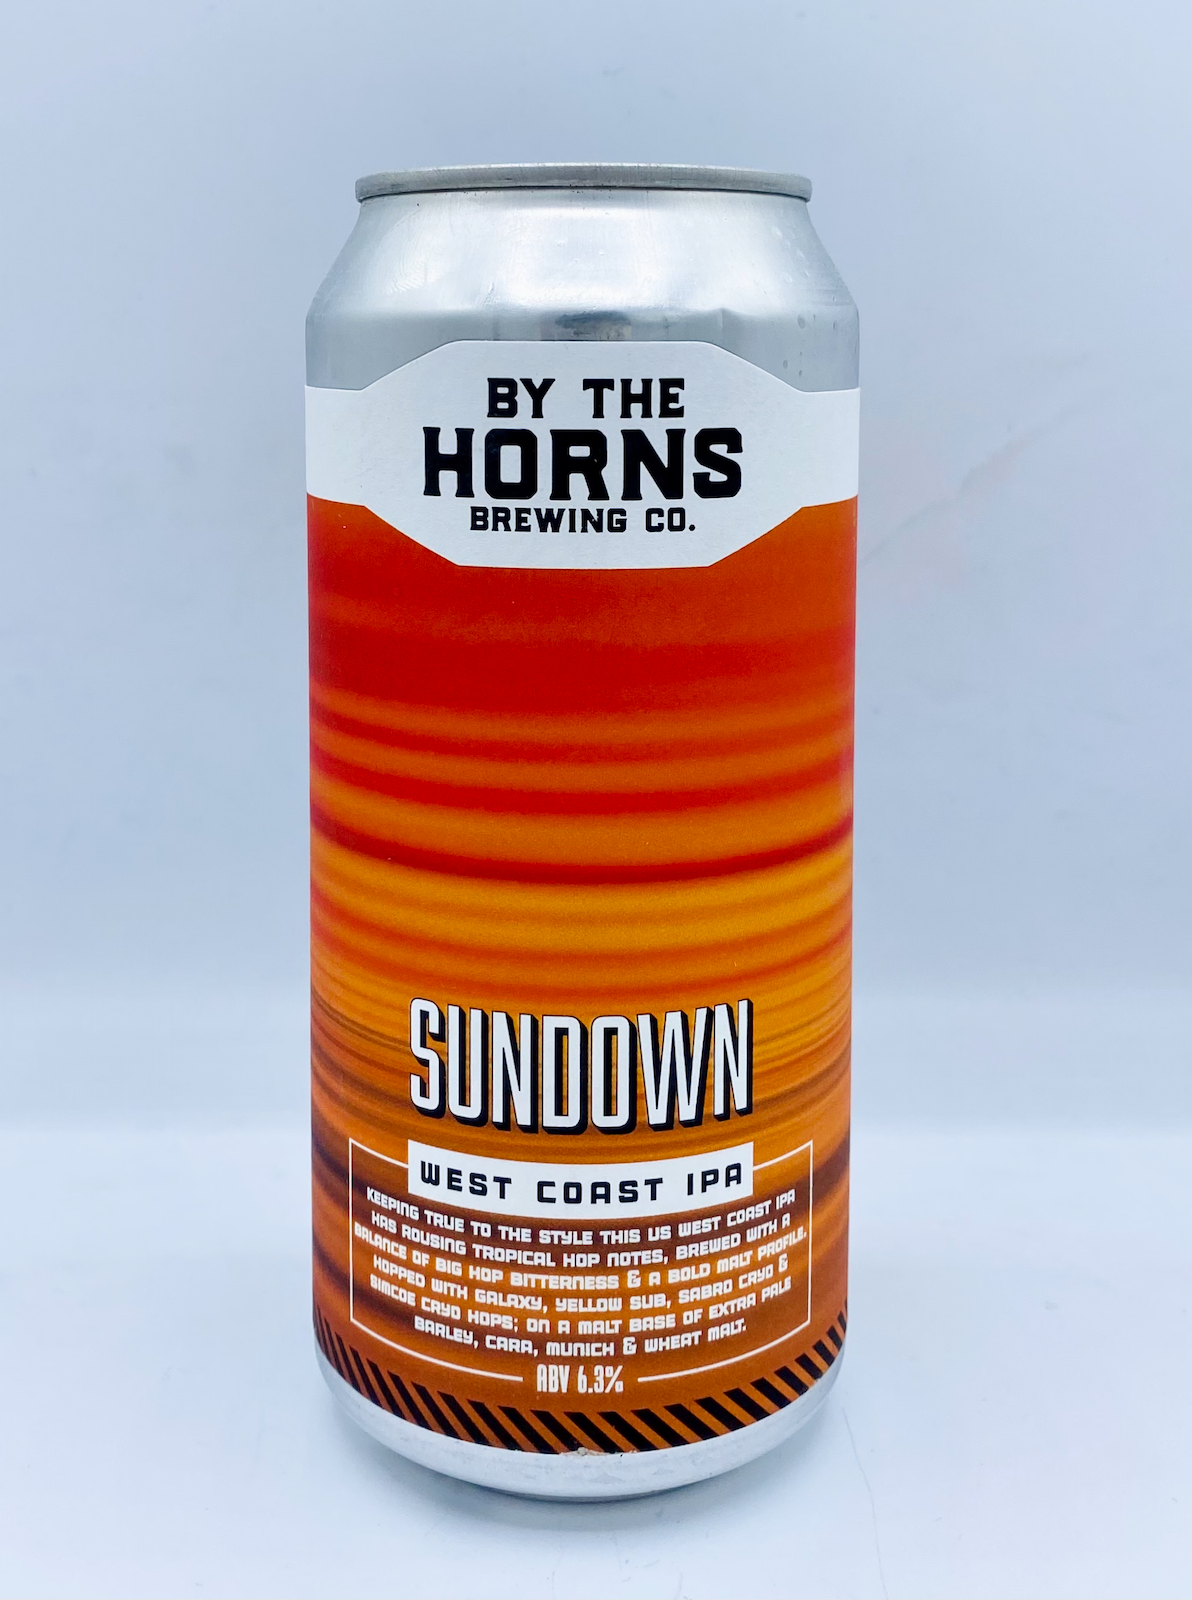 By The Horns Brewing Co - Sundown 6.3%